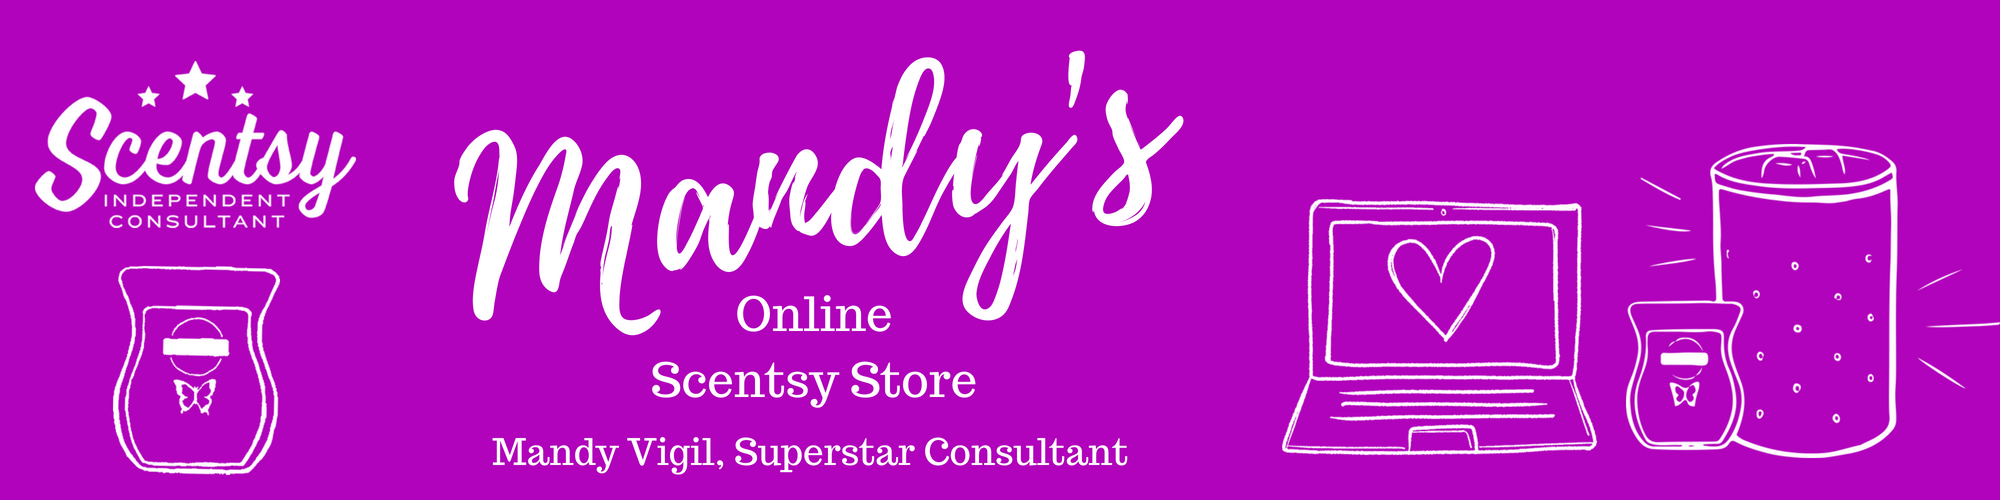 Mandy's Online Scentsy Store